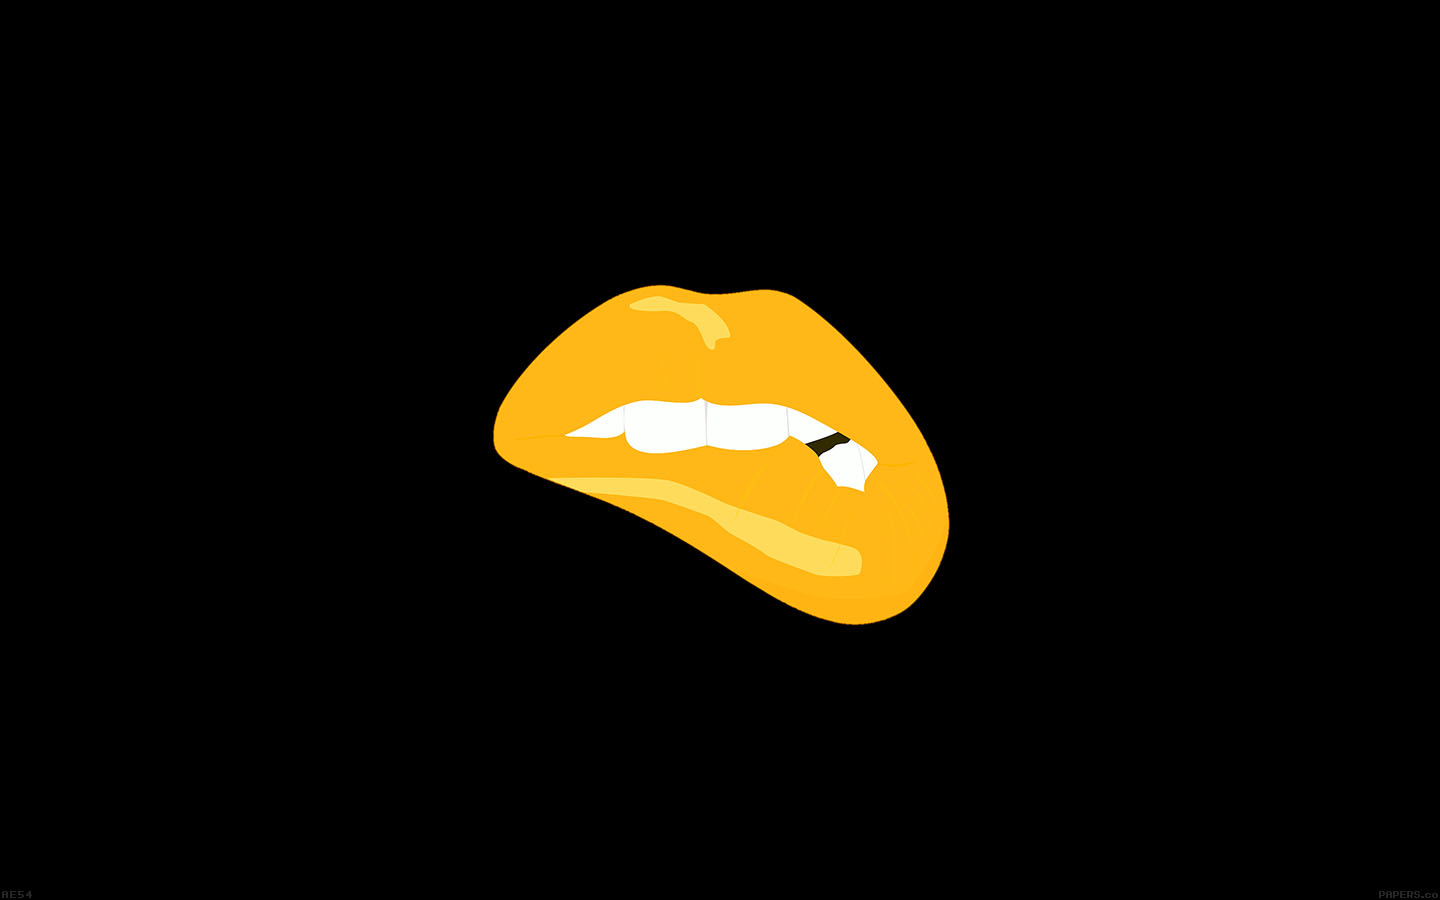 Minimalist Cute Desktop Wallpaper Ae54 Biting Lips Gold Black Background Minimal Art Wallpaper